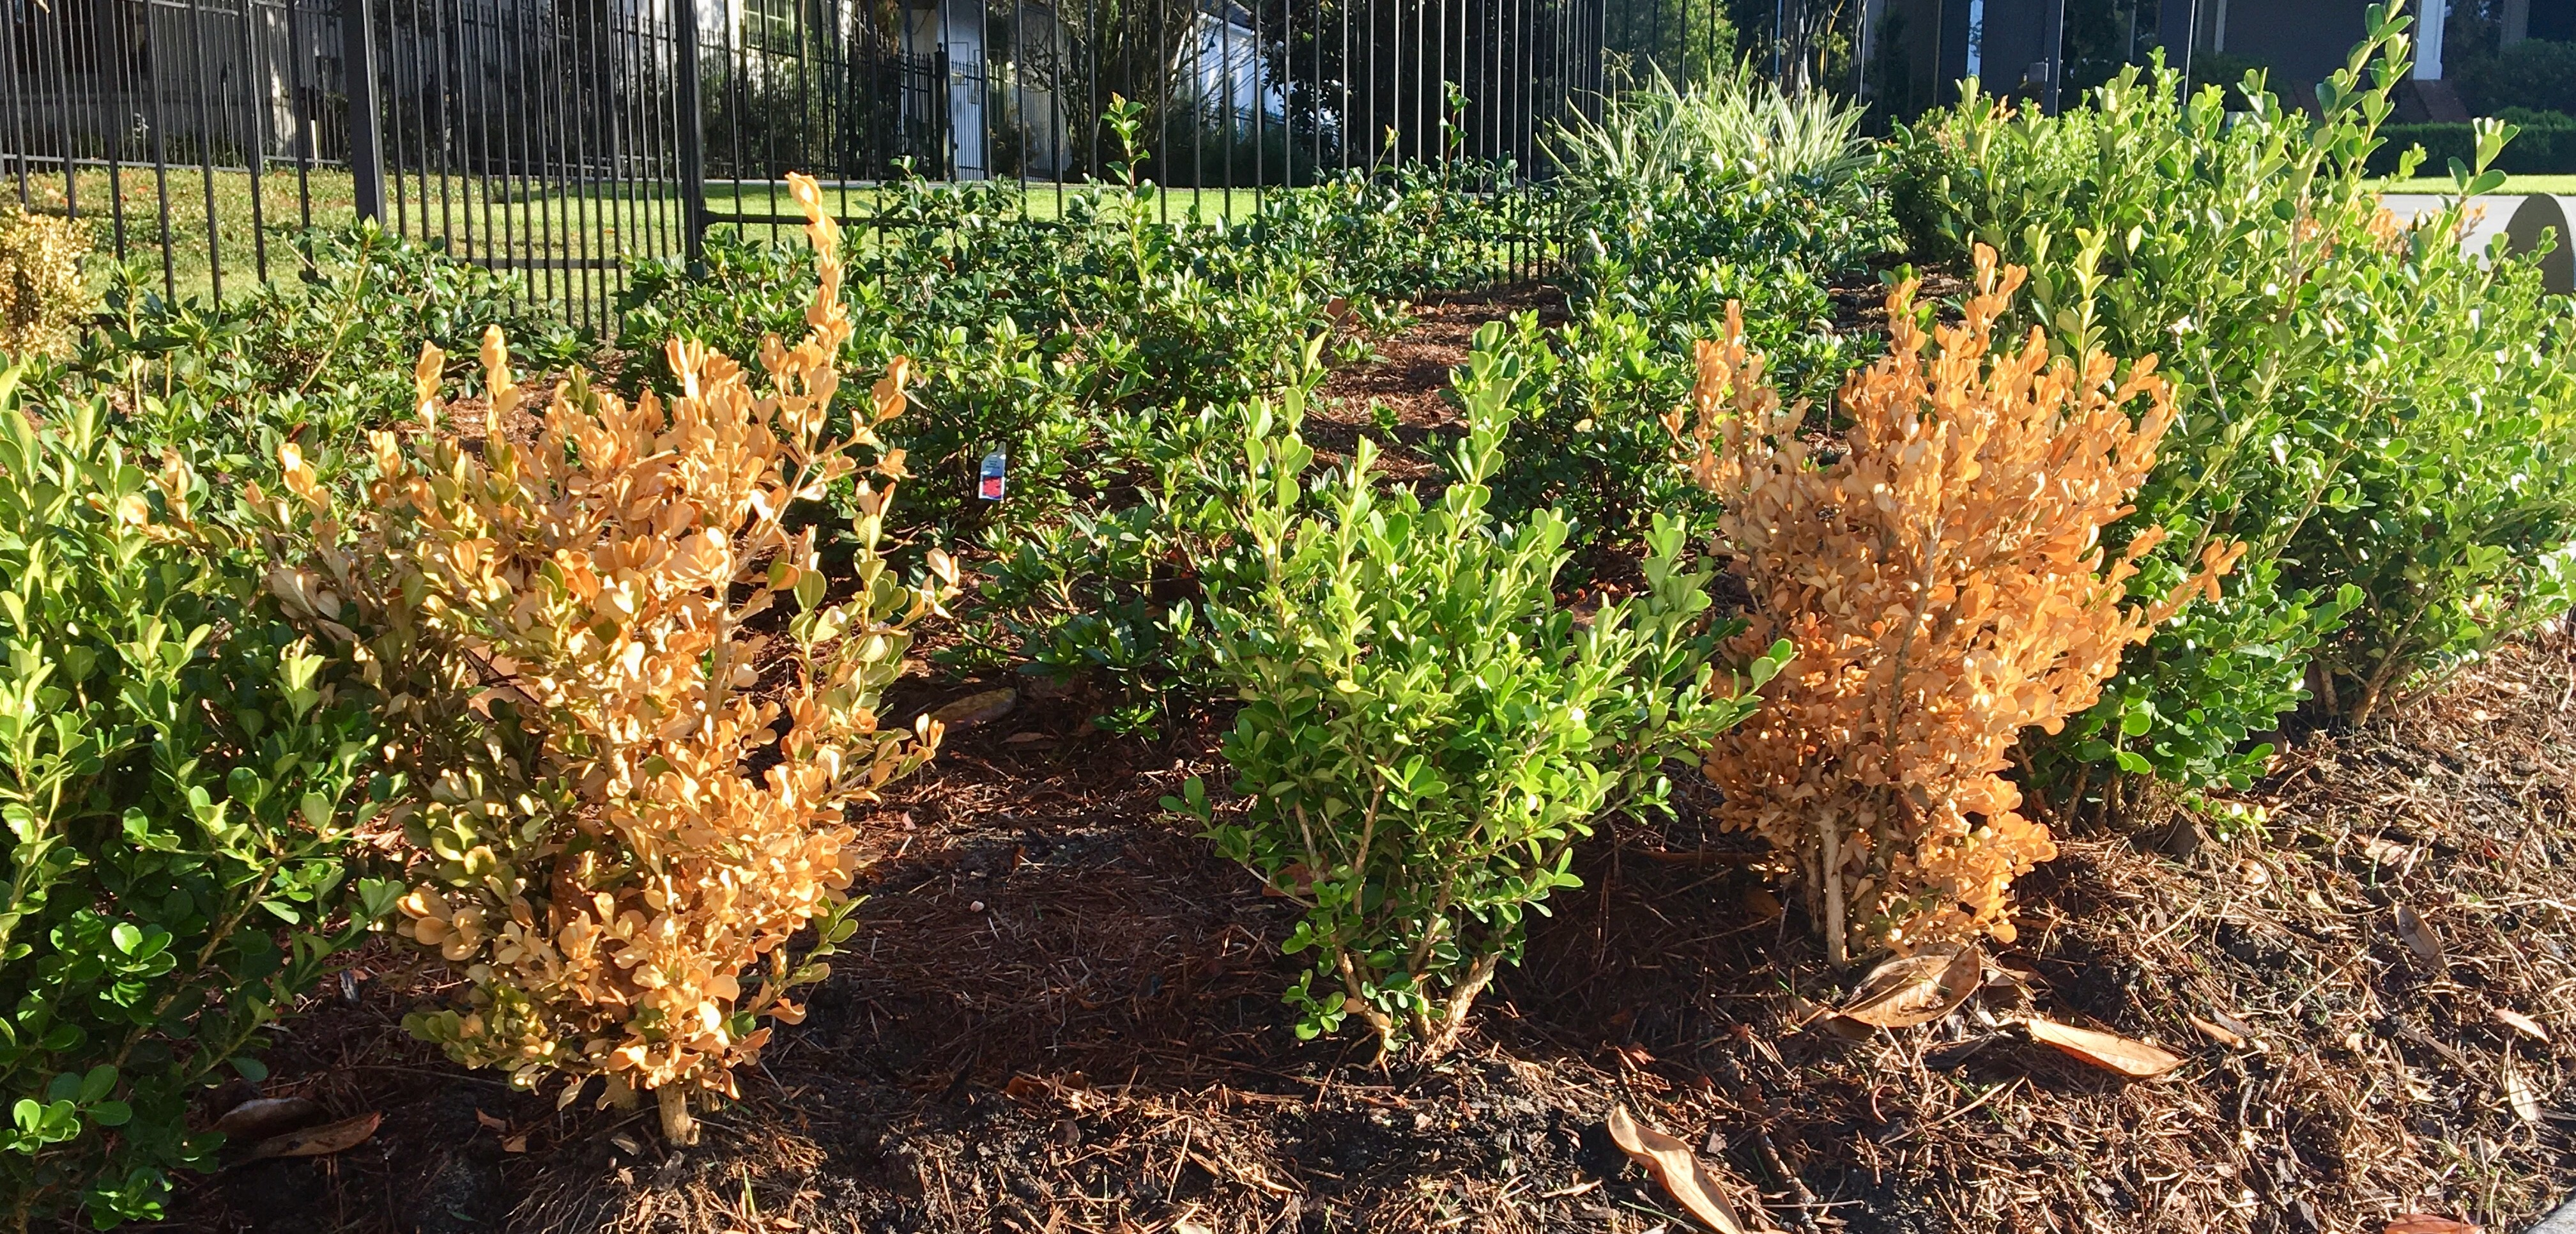 Littleleaf boxwood is susceptible to many things in early establishment including many fungal diseases that can lead to death-photo credit Heatther Kirk Ballard.jpg thumbnail